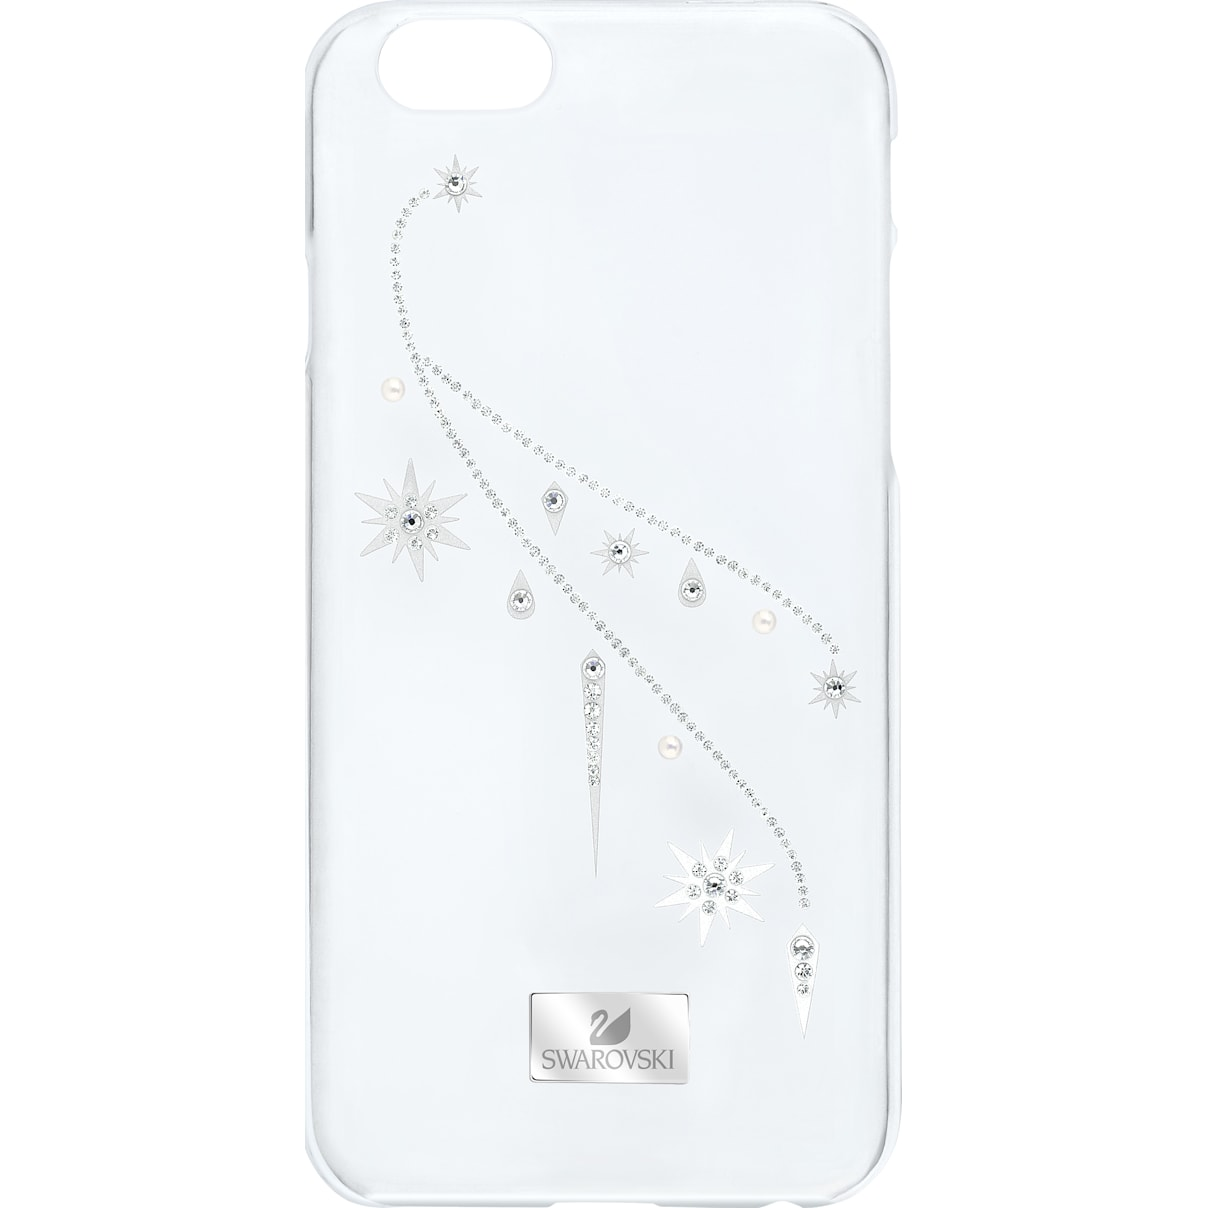 Swarovski Fantastic Smartphone Case with Bumper, iPhone® 7